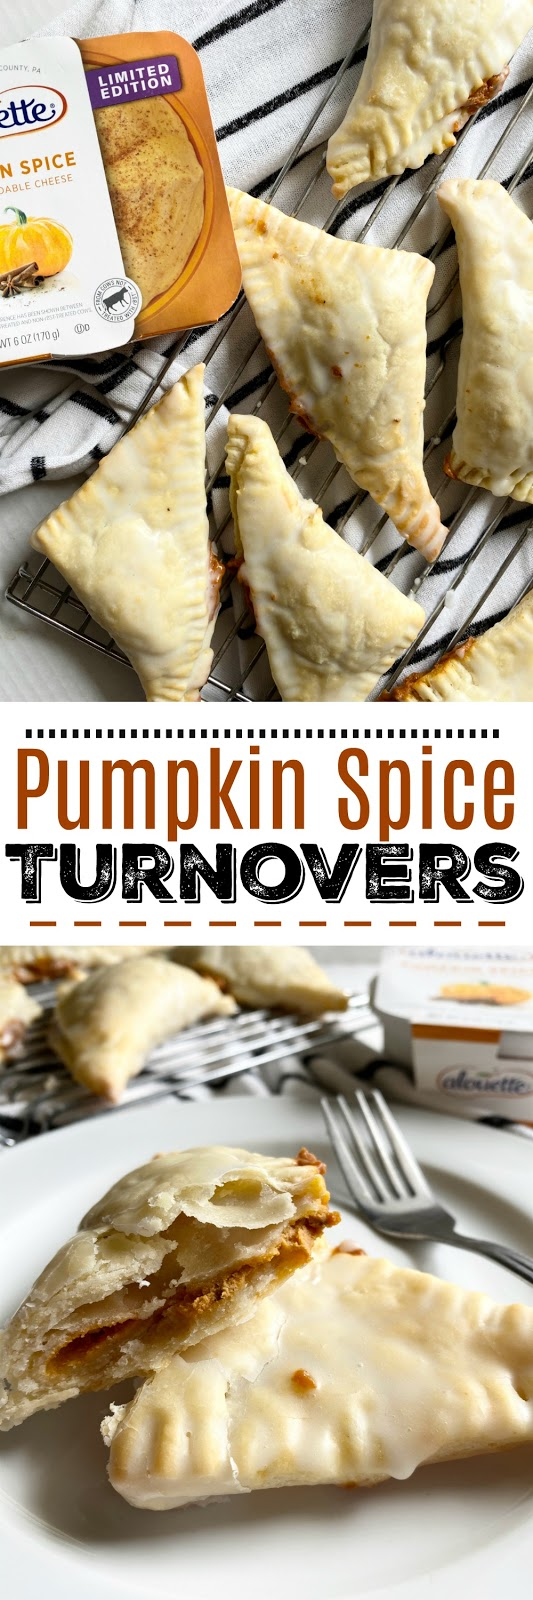 pumpkin spice turnovers #pumpkinspice #alouette #turnovers